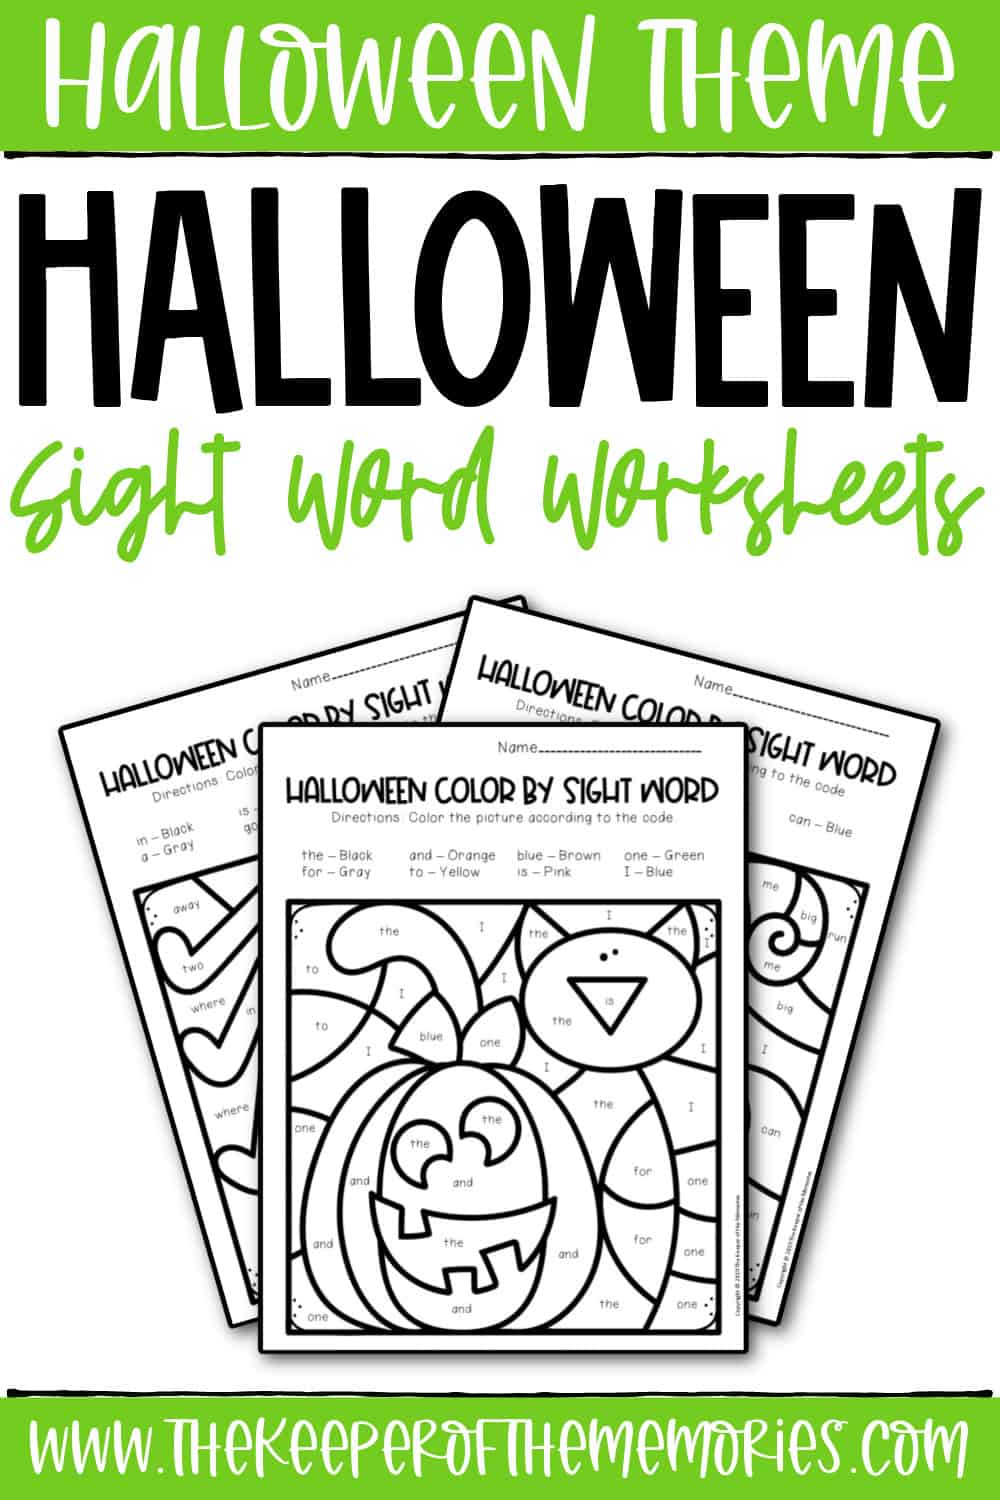 Color by Sight Word Halloween Worksheets for Preschoolers